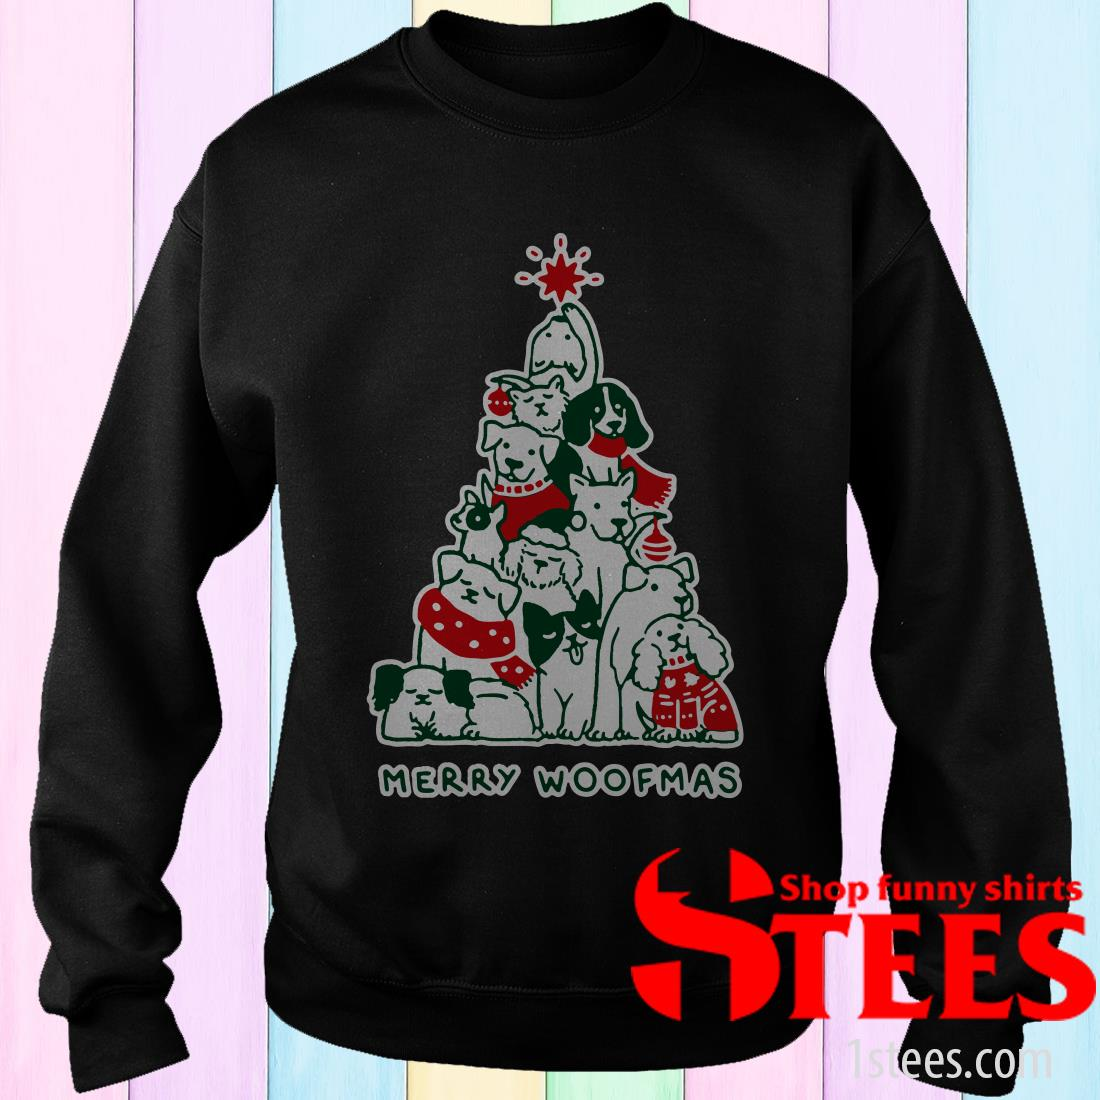 Merry Woofmas Funny Dogs Christmas Tree Xmas Gift Sweatshirt